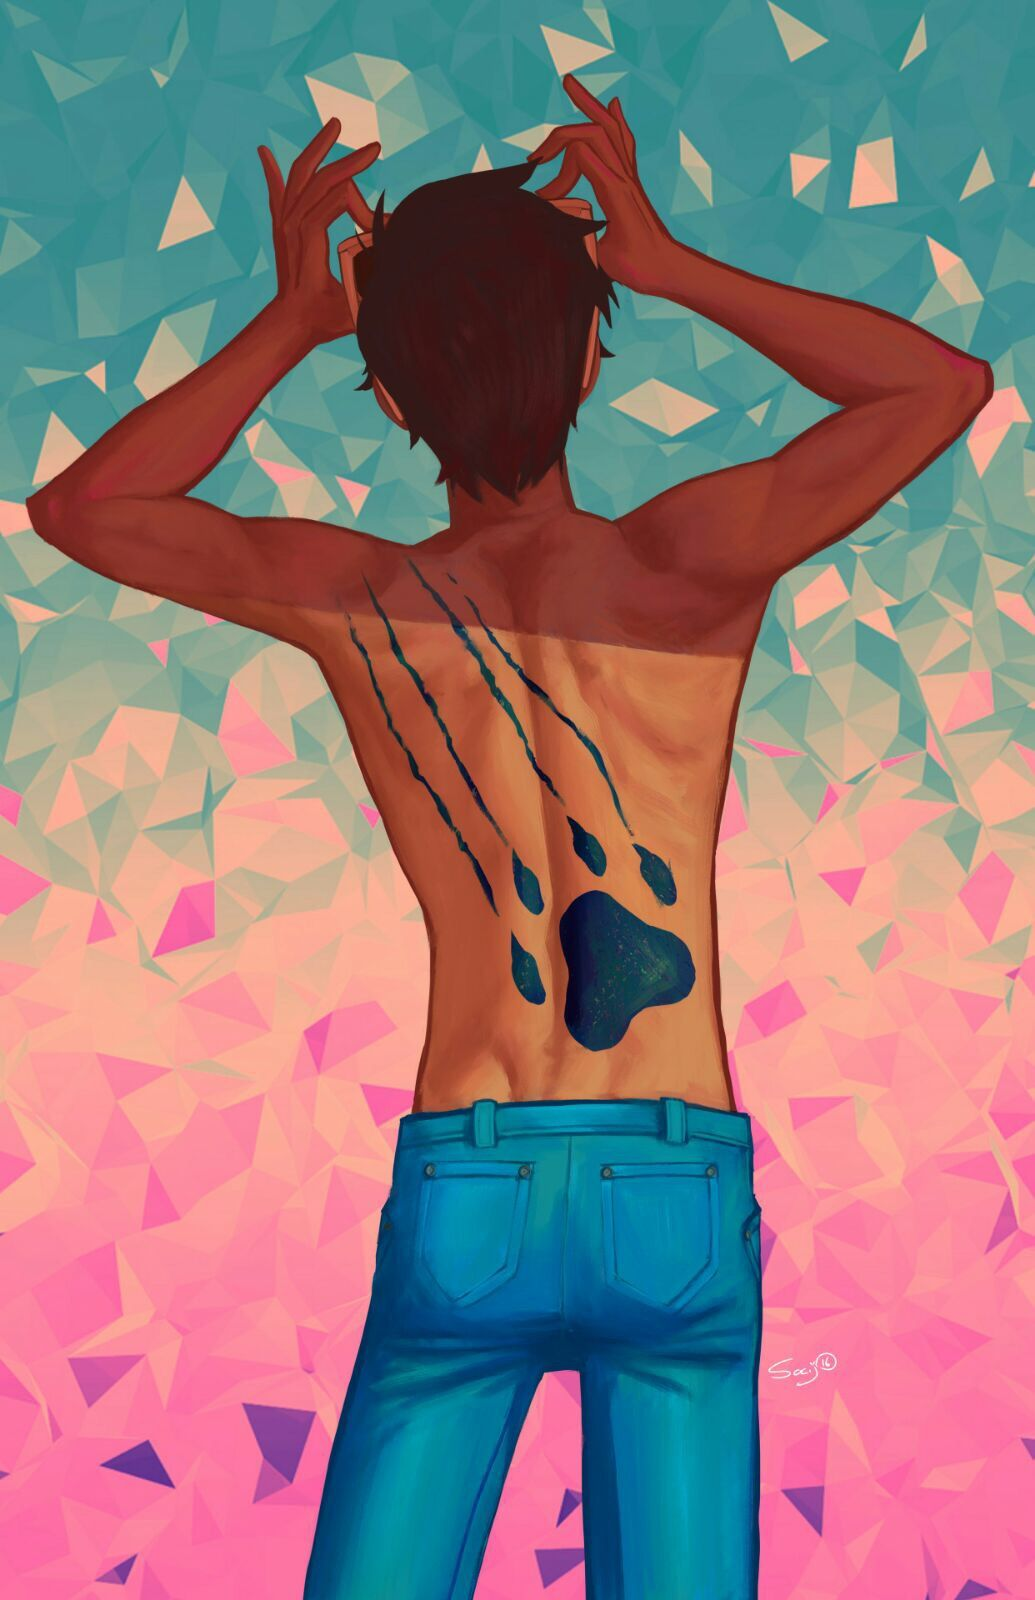 Lance and his Blue Lion paw print tattoo on his back from Voltron Legendary Defender